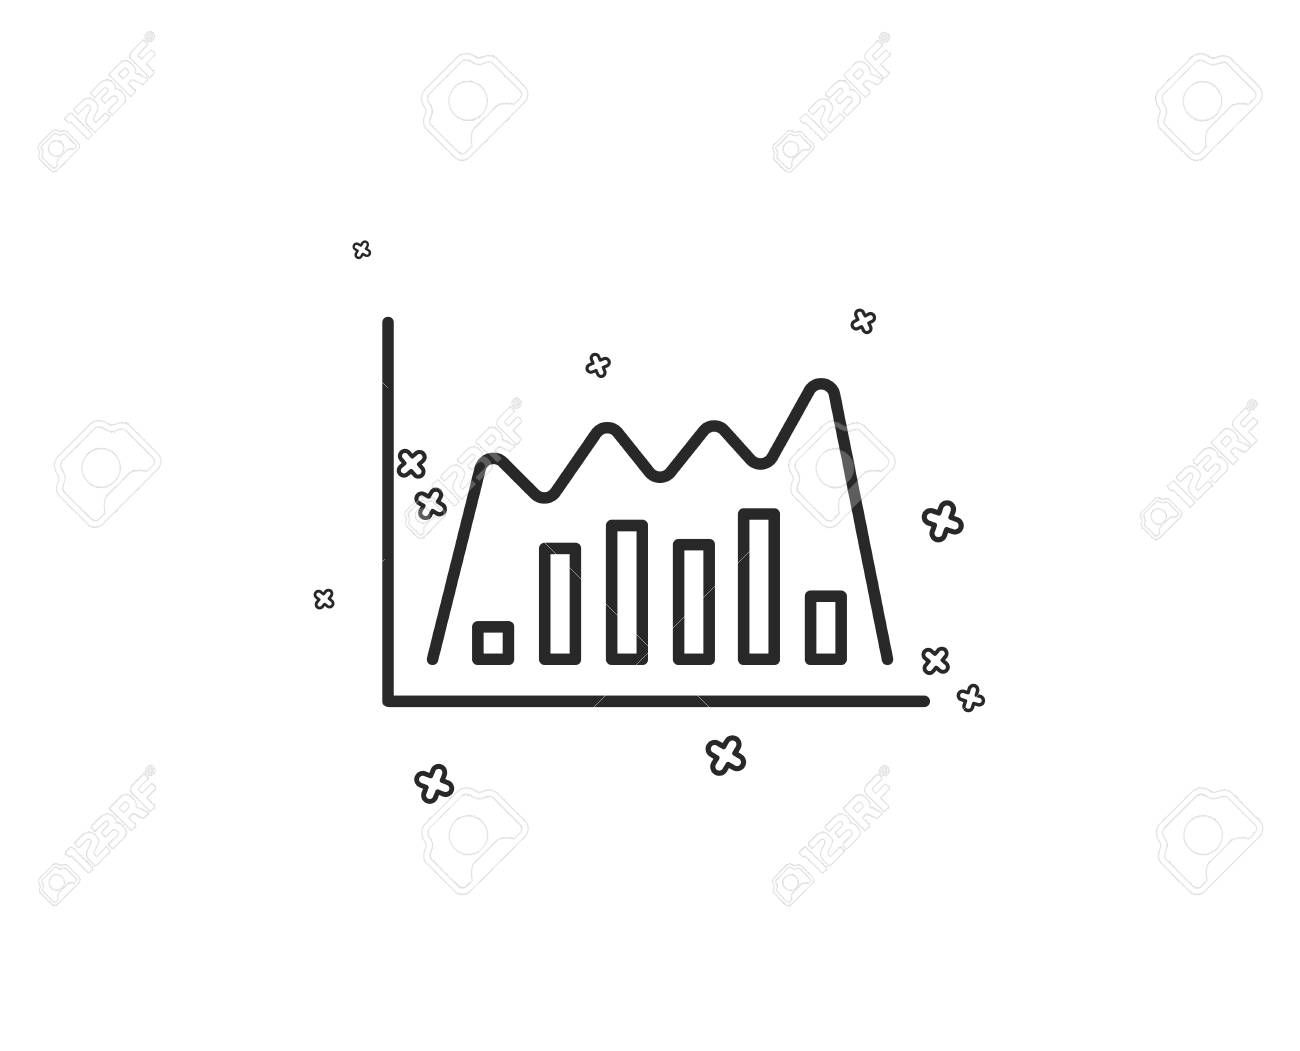 Investment chart line icon. Economic graph sign. Stock exchange symbol. Business finance. Geometric shapes. Random cross elements. Linear Infographic graph icon design. Vector ,